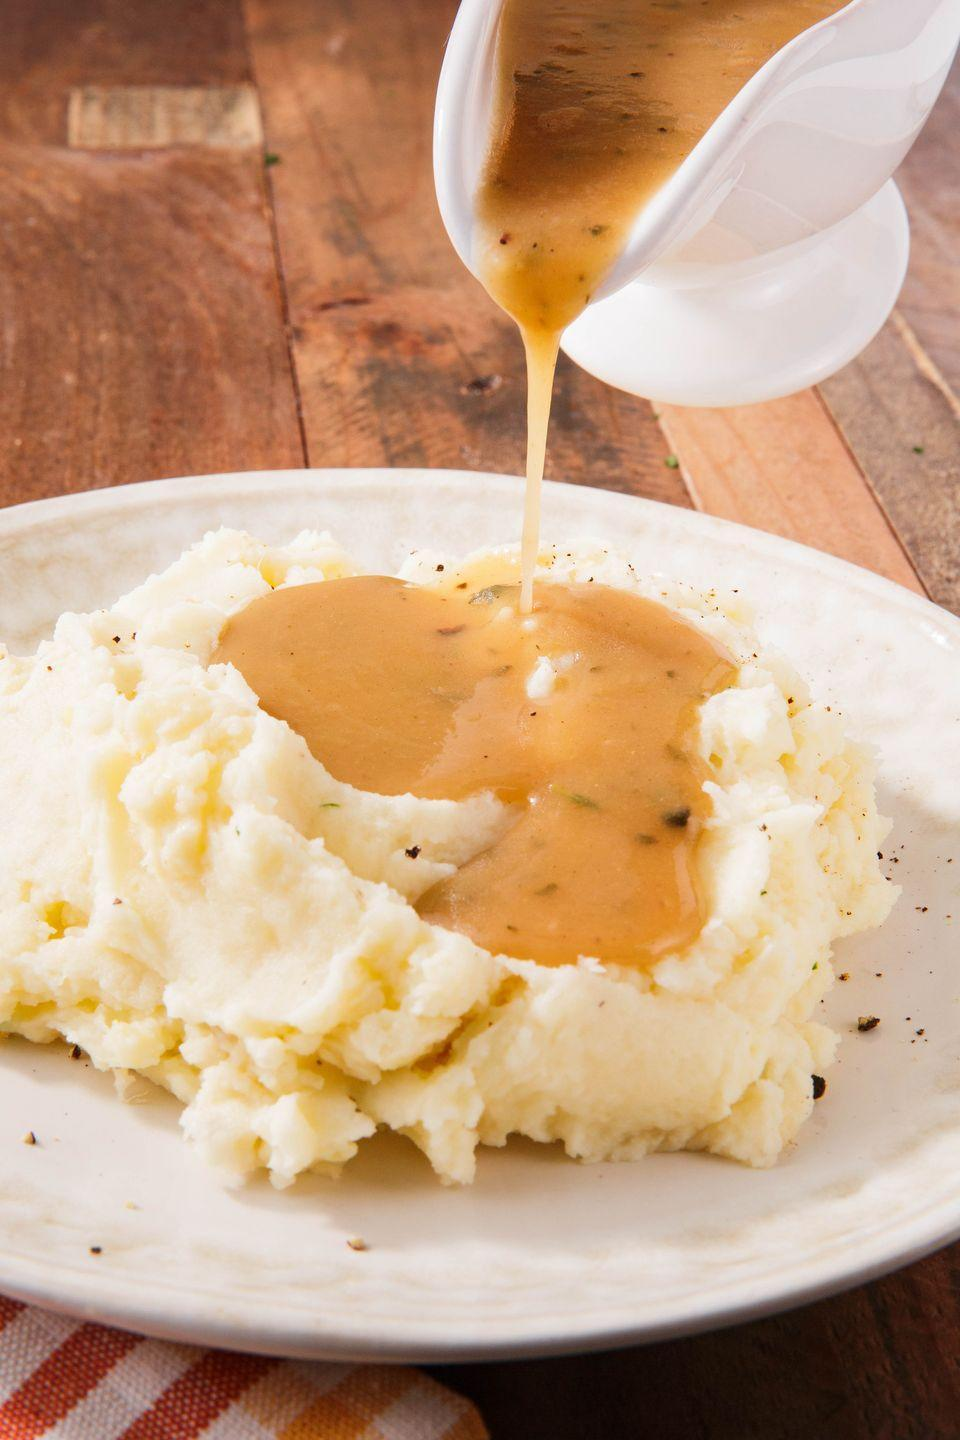 """<p>Butter and herbs give this gravy allll the flavor.</p><p>Get the recipe from <a href=""""https://www.delish.com/holiday-recipes/thanksgiving/a24520700/gluten-free-gravy-recipe/"""" rel=""""nofollow noopener"""" target=""""_blank"""" data-ylk=""""slk:Delish"""" class=""""link rapid-noclick-resp"""">Delish</a>.</p>"""